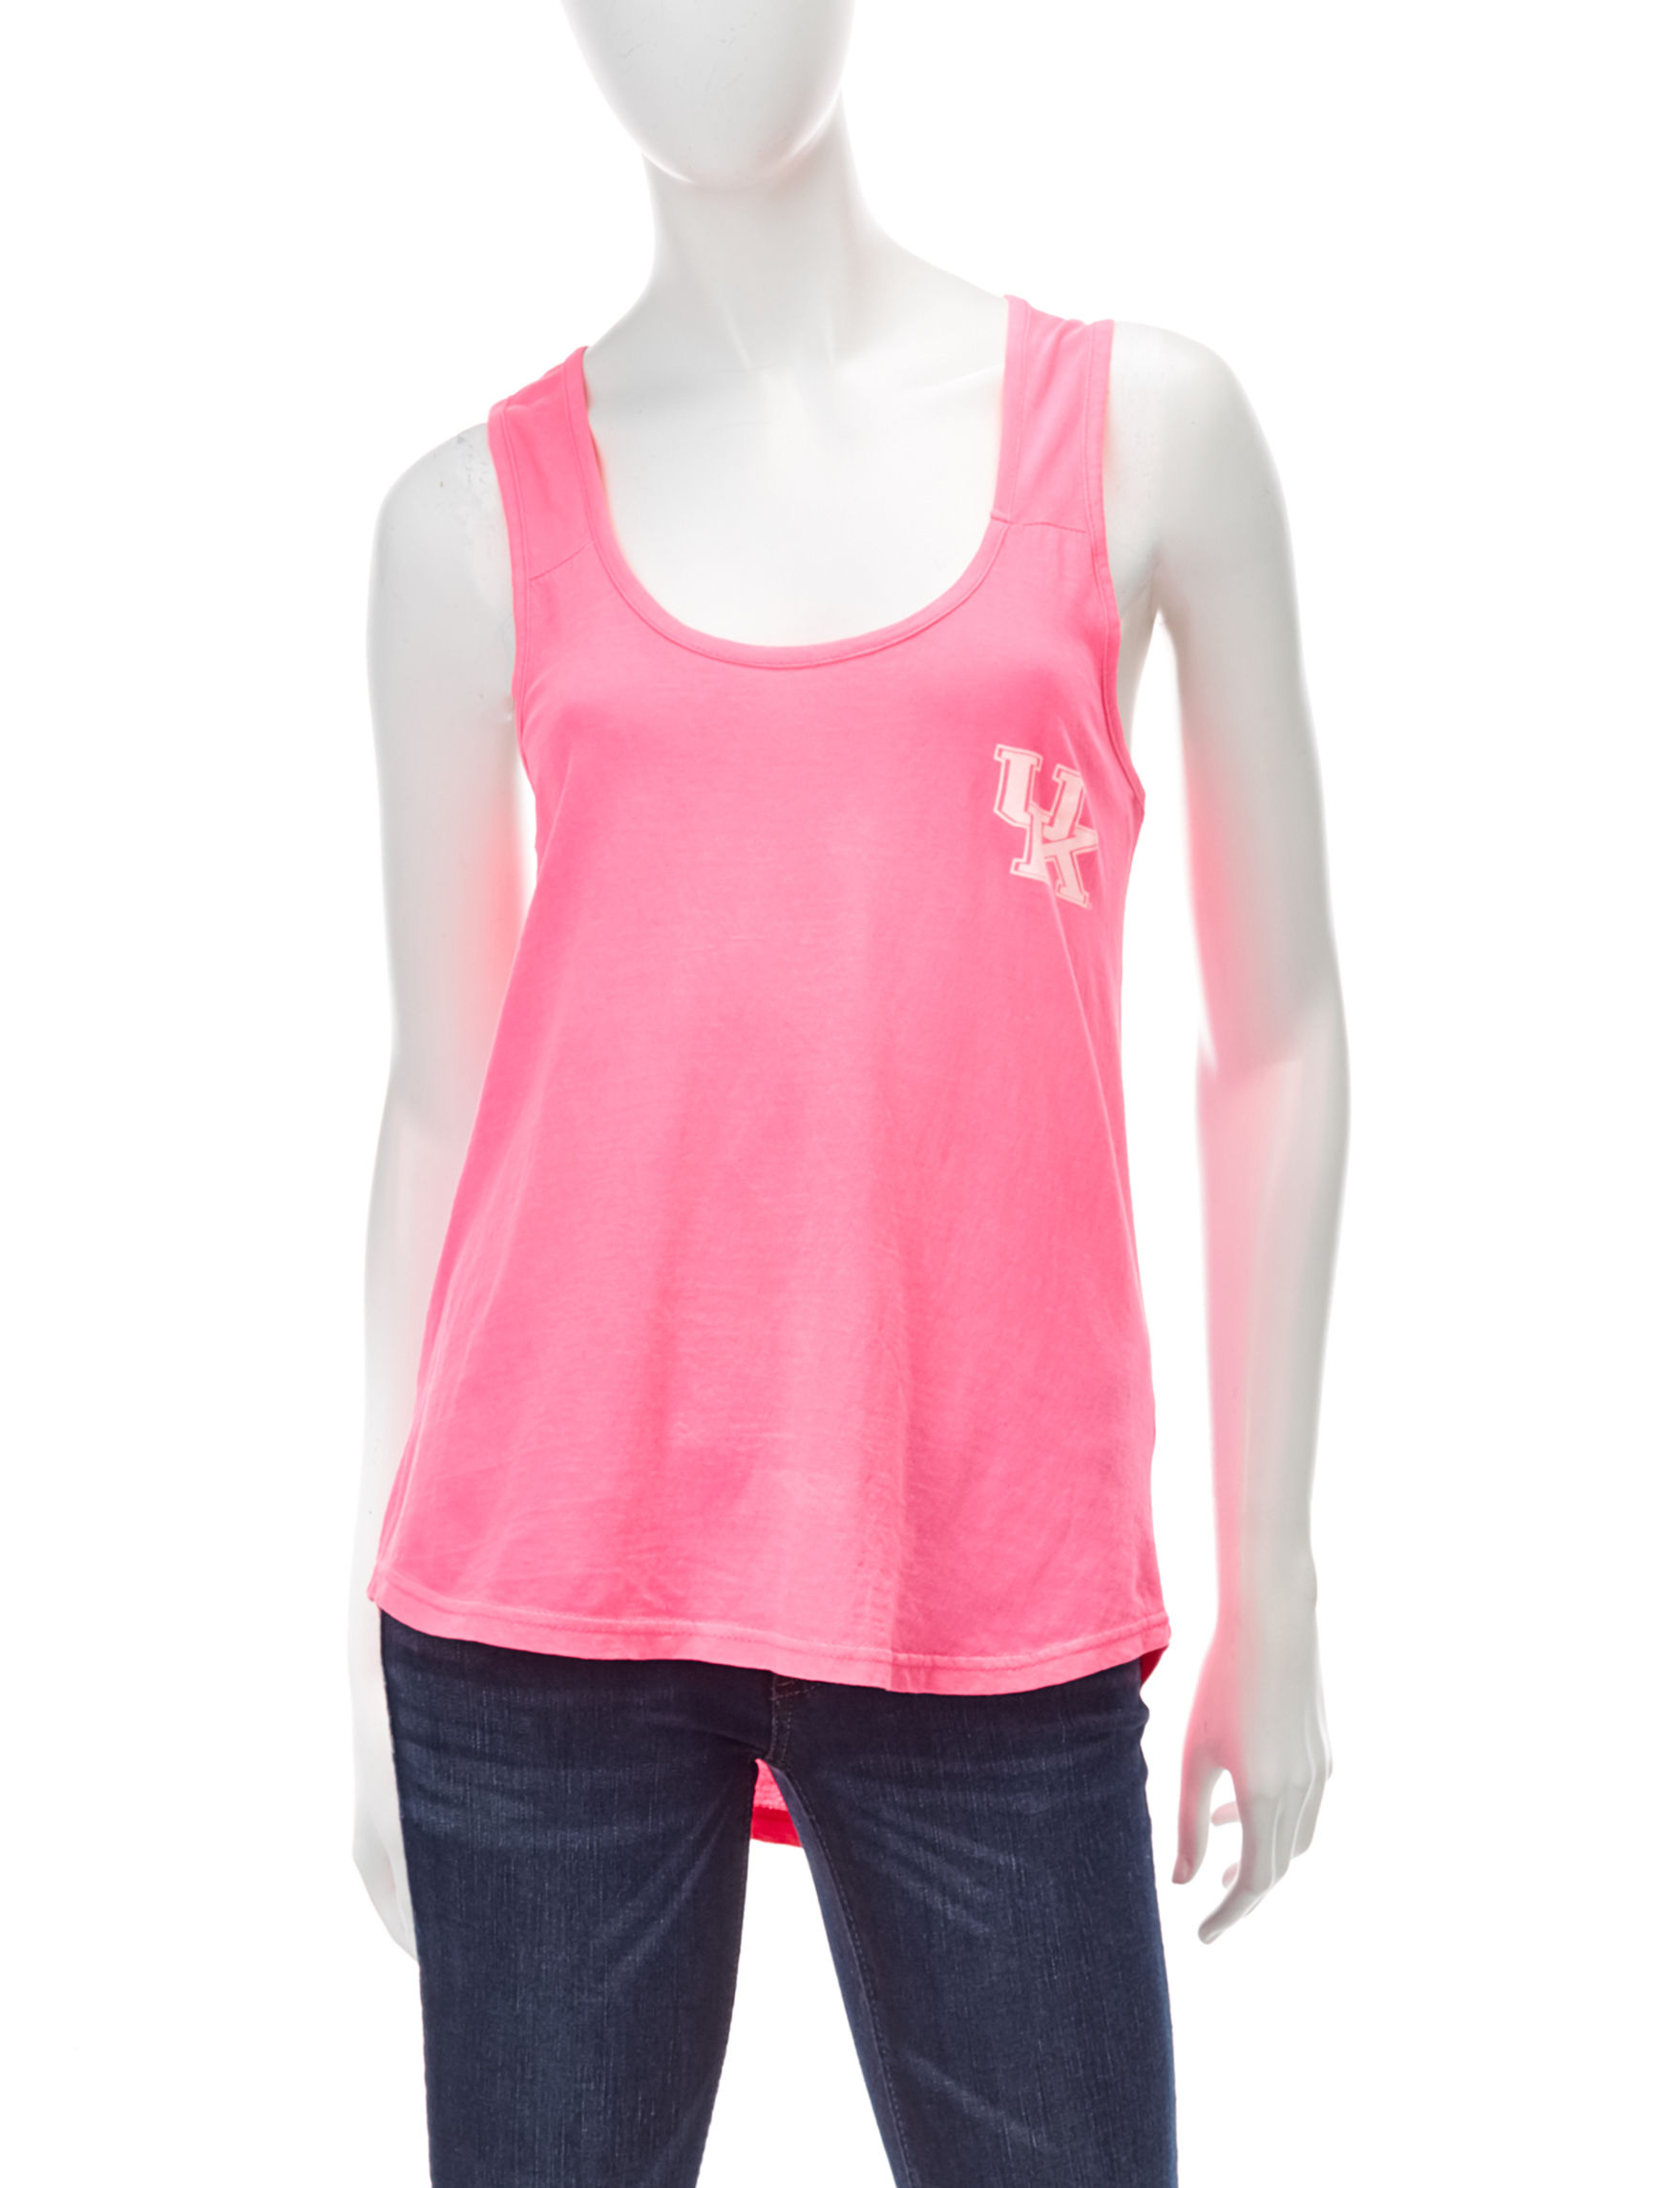 NCAA Pink Camisoles & Tanks Tees & Tanks NCAA